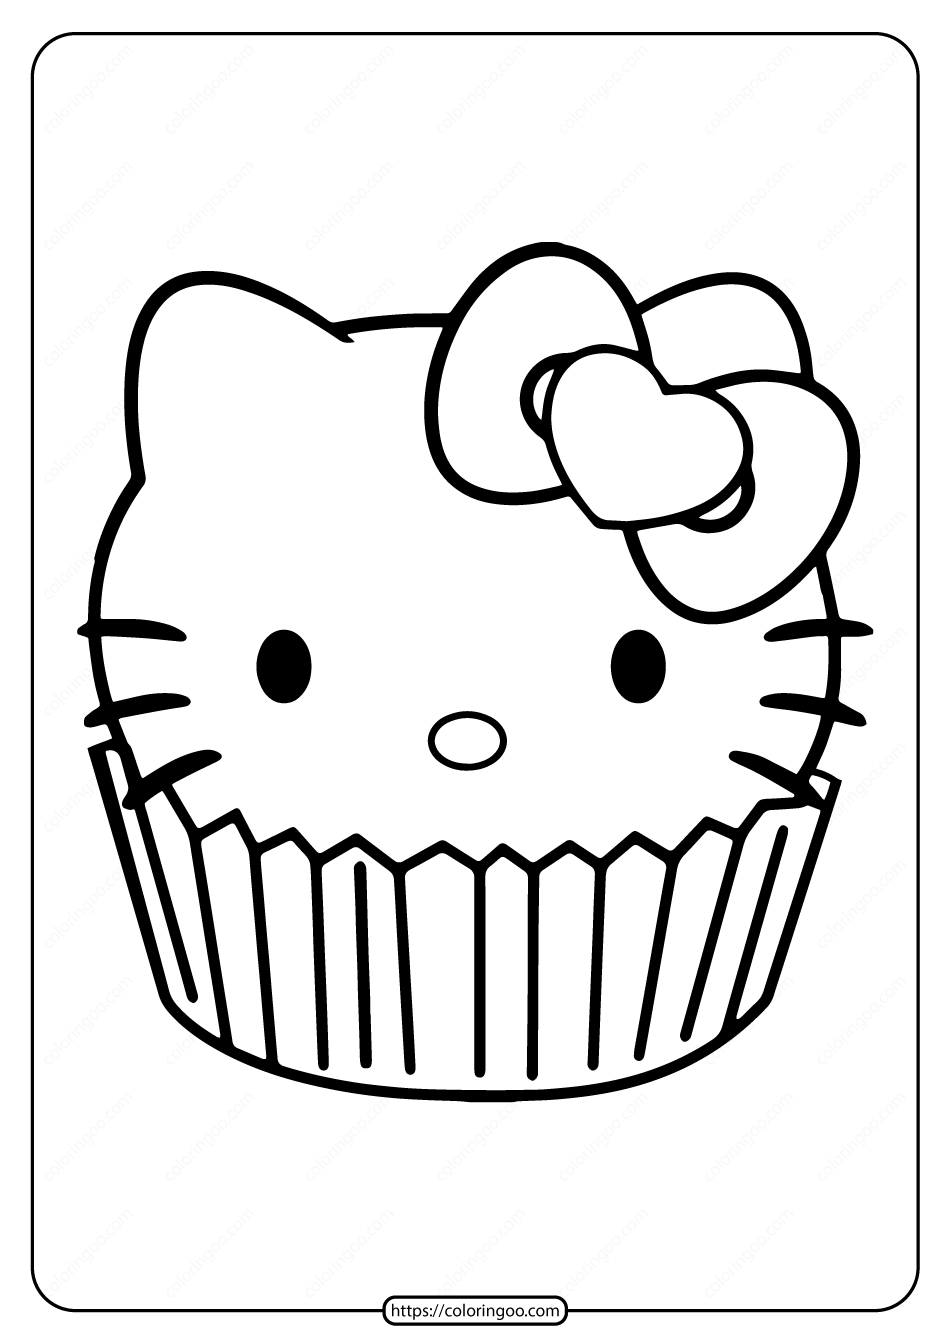 Free Printable Hello Kitty Cupcake Coloring Page